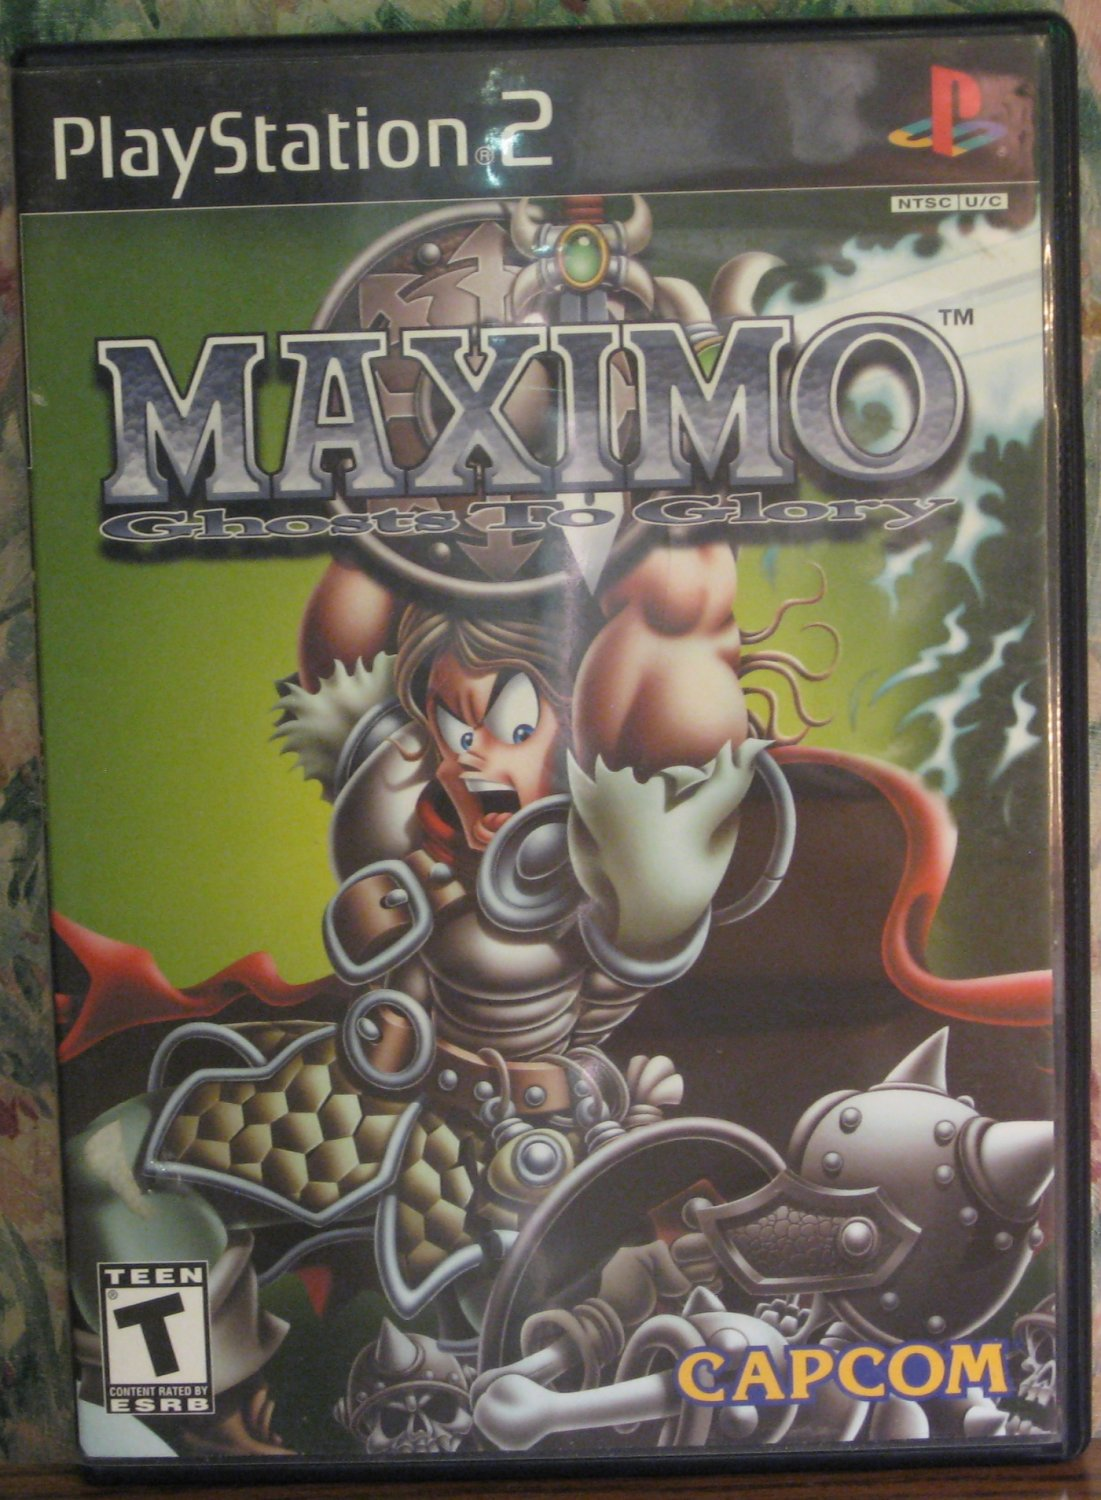 Sony PS2 Maximo: Ghosts to Glory - Playstation 2 - Capcom - 2002 Vintage